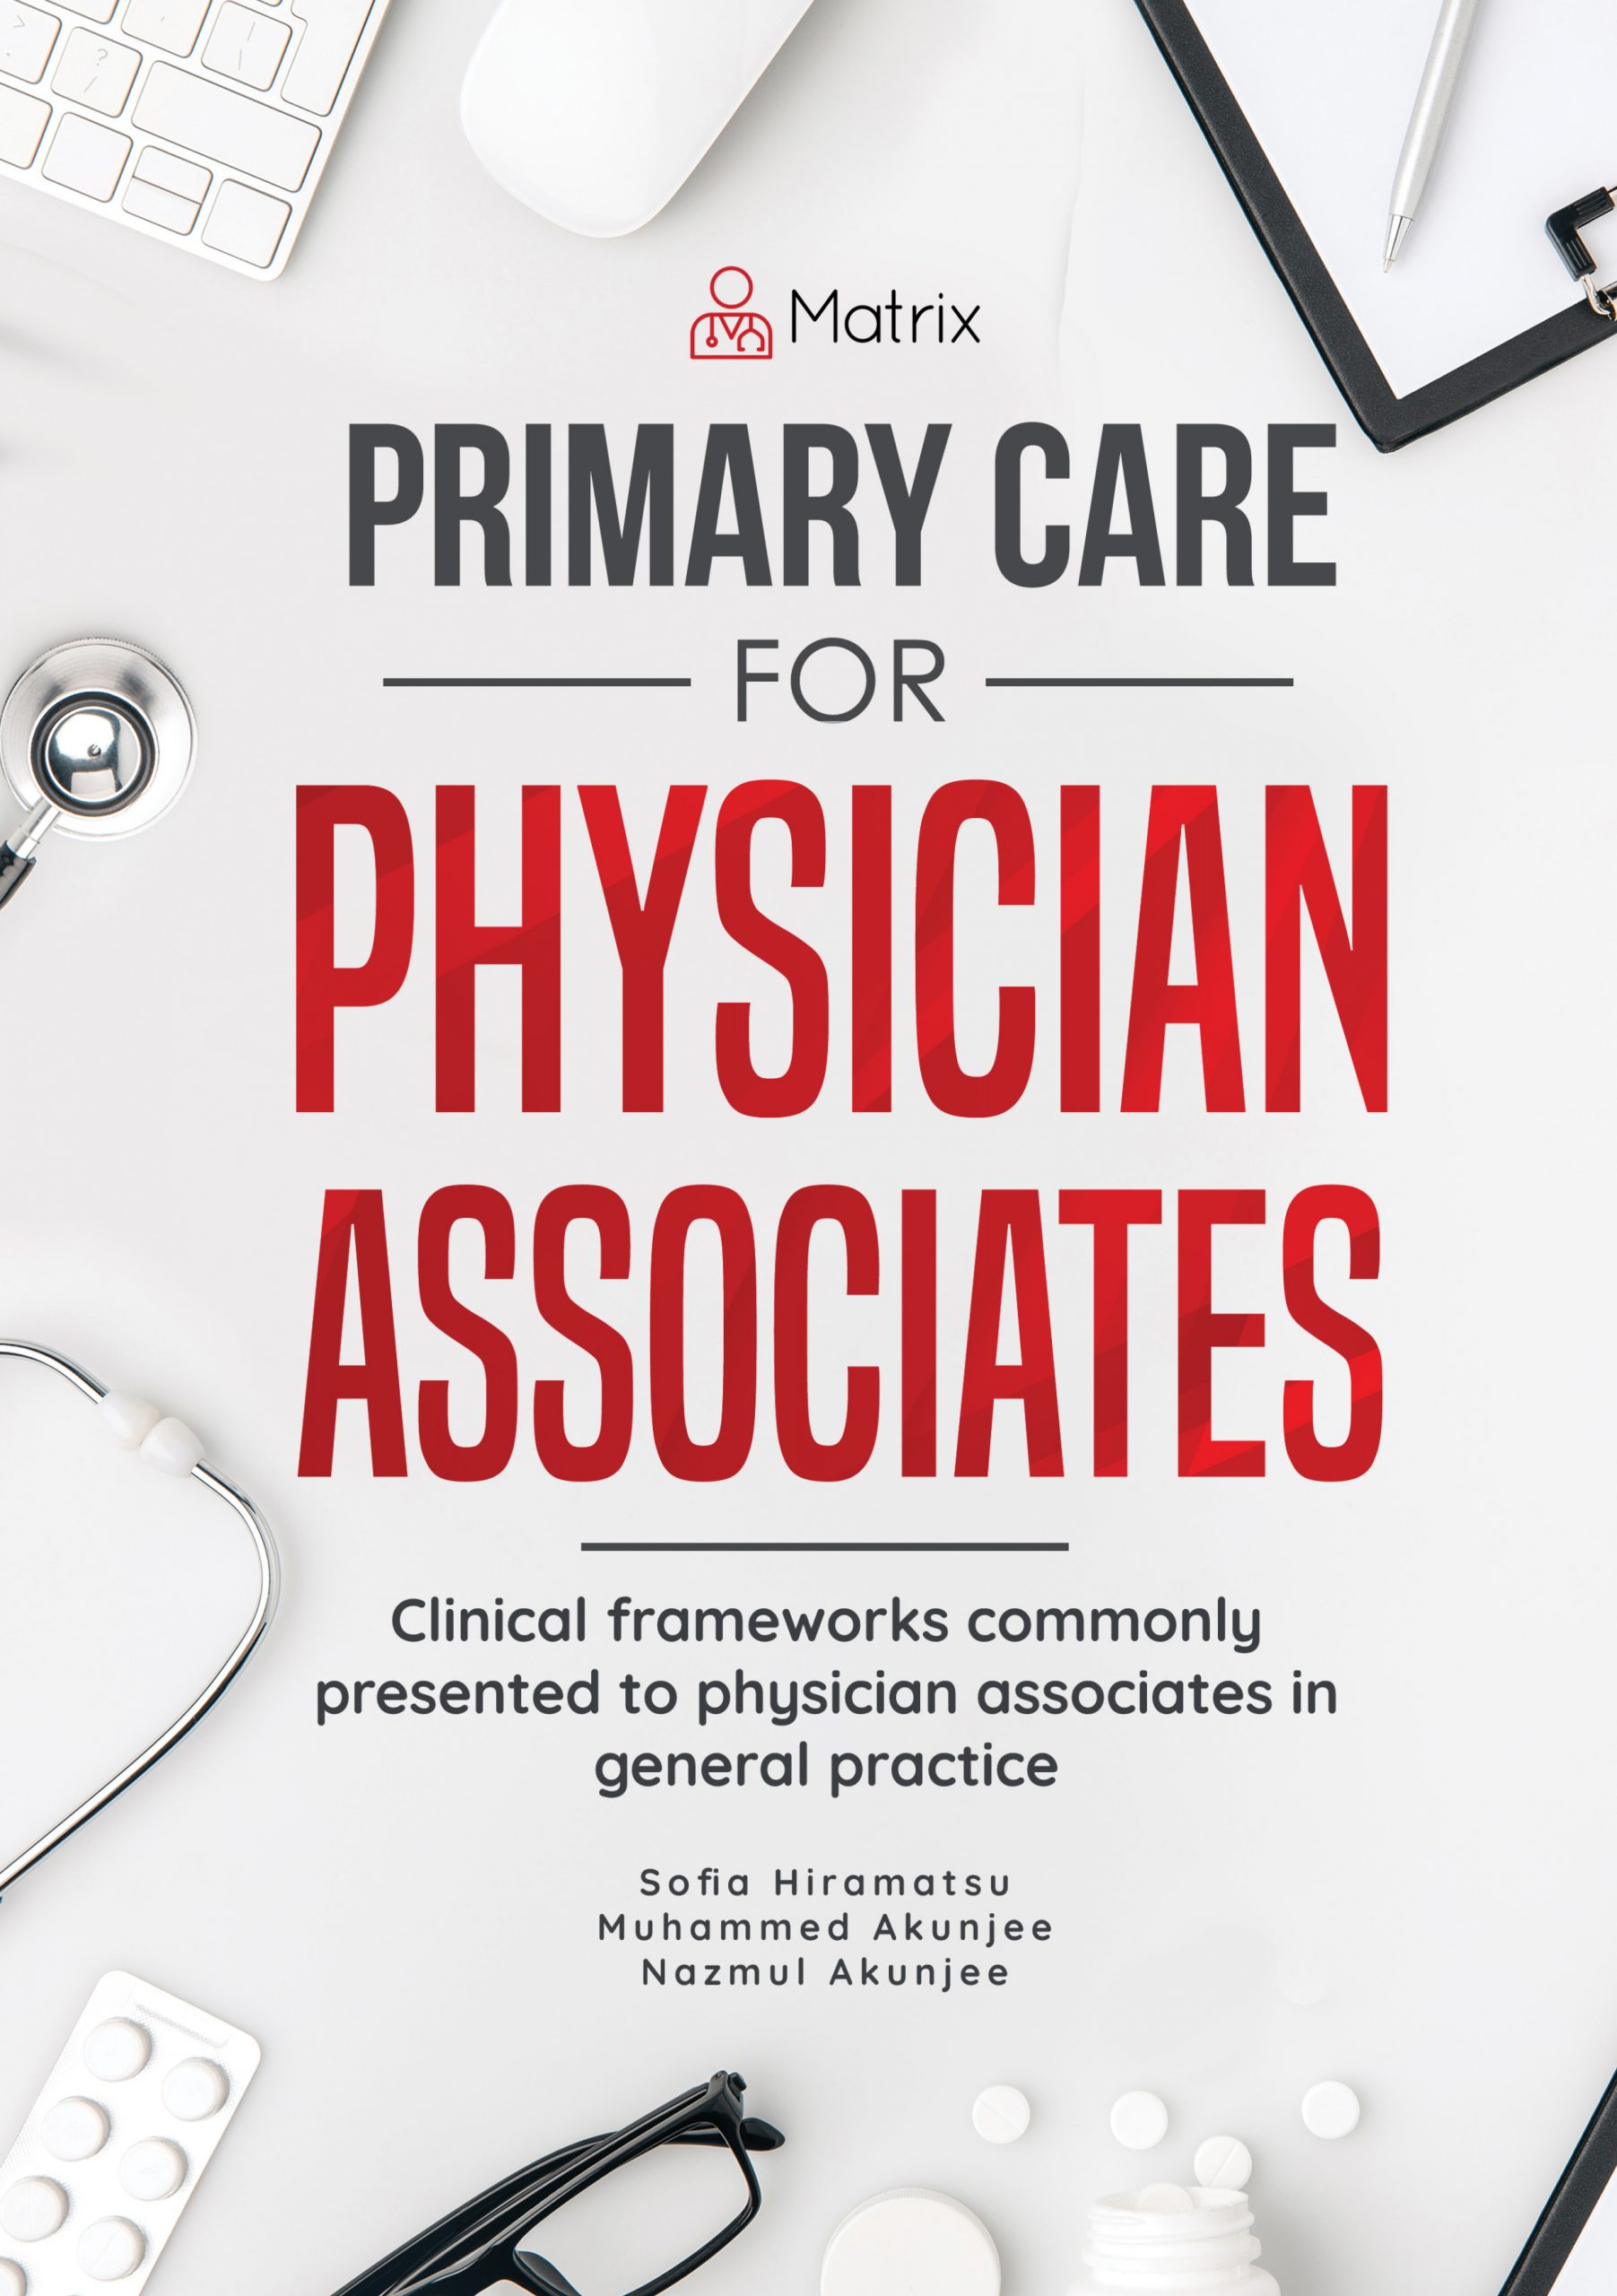 Primary Care for Physician Associates